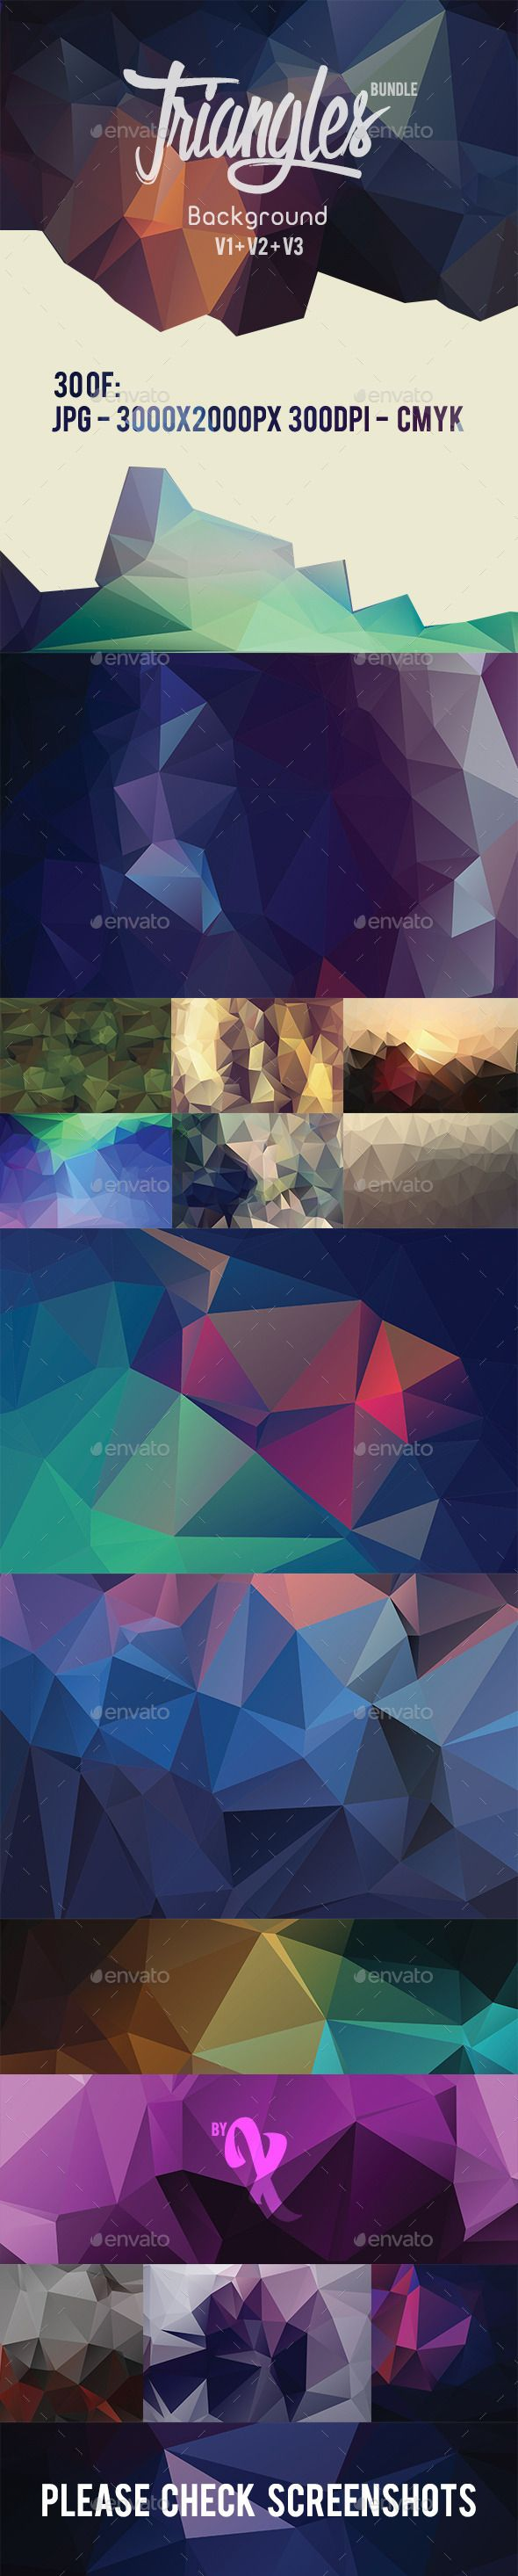 30 Triangles Background Bundle by Axoa 30 Triangles Background Bundle30 prefect triangles background,sample and in high resolution File Features: 30002000px, 300 DPI, C